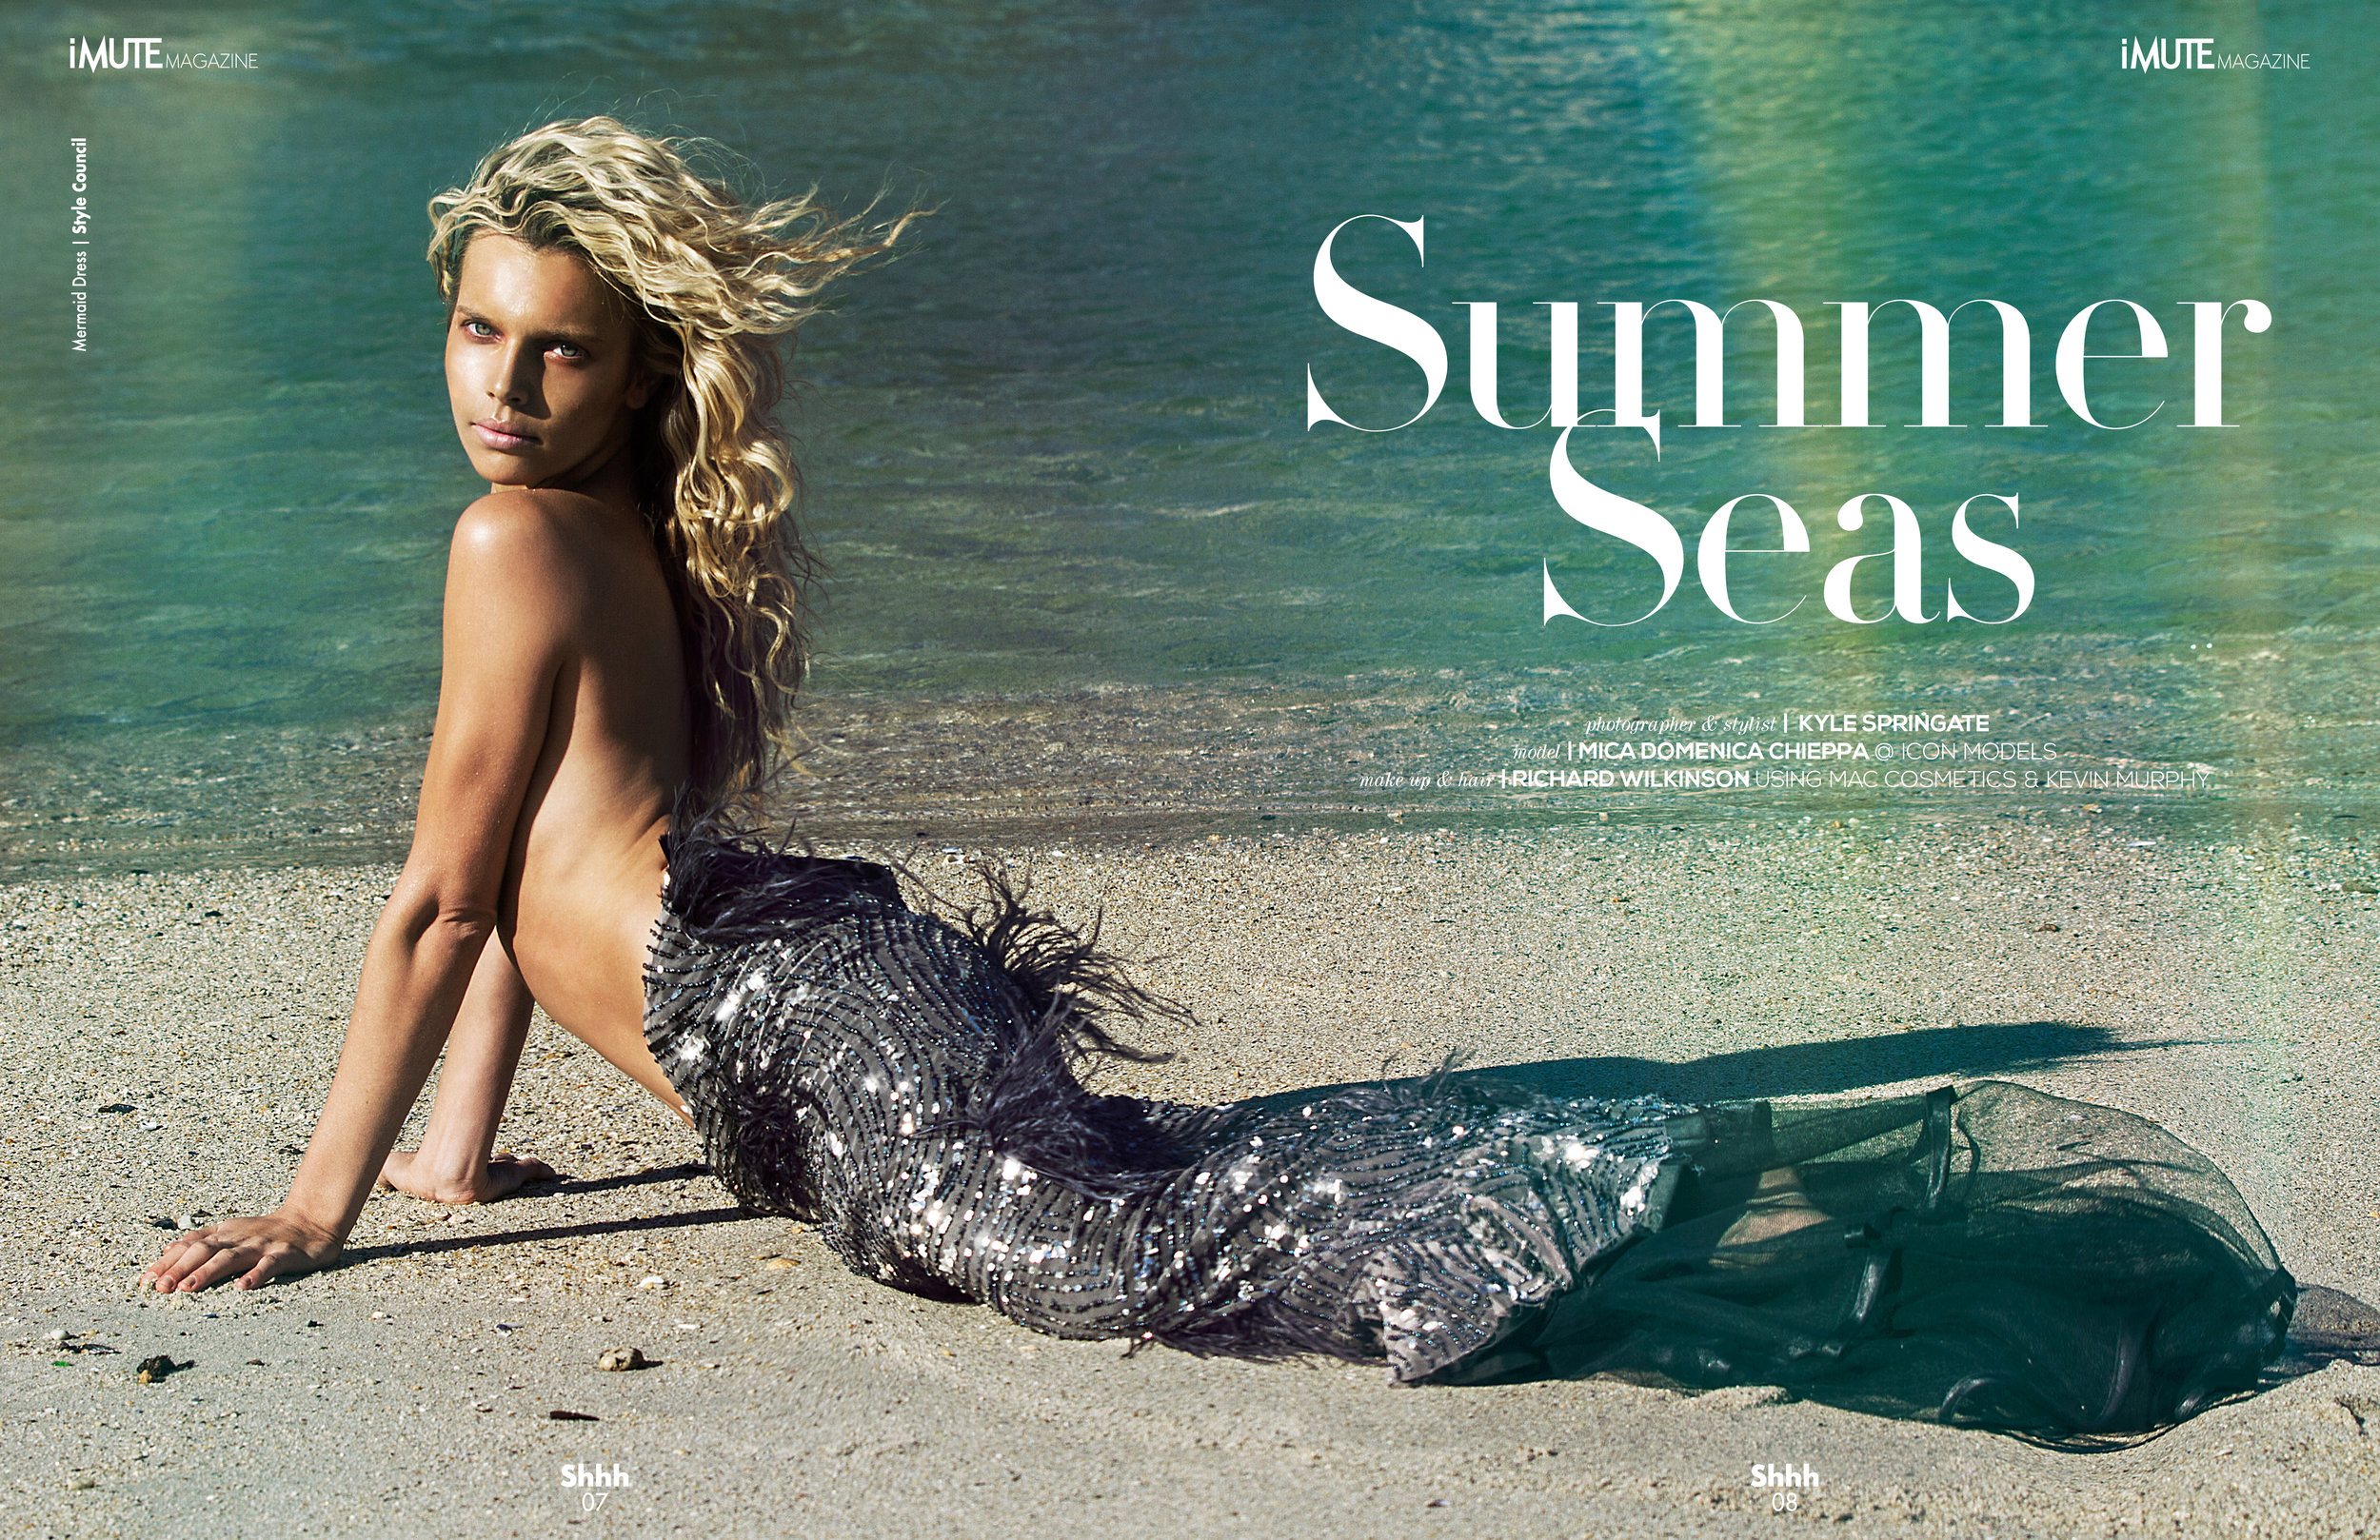 Summer Seas - iMute Magazine #16 | Fall Issue1 copy.jpg